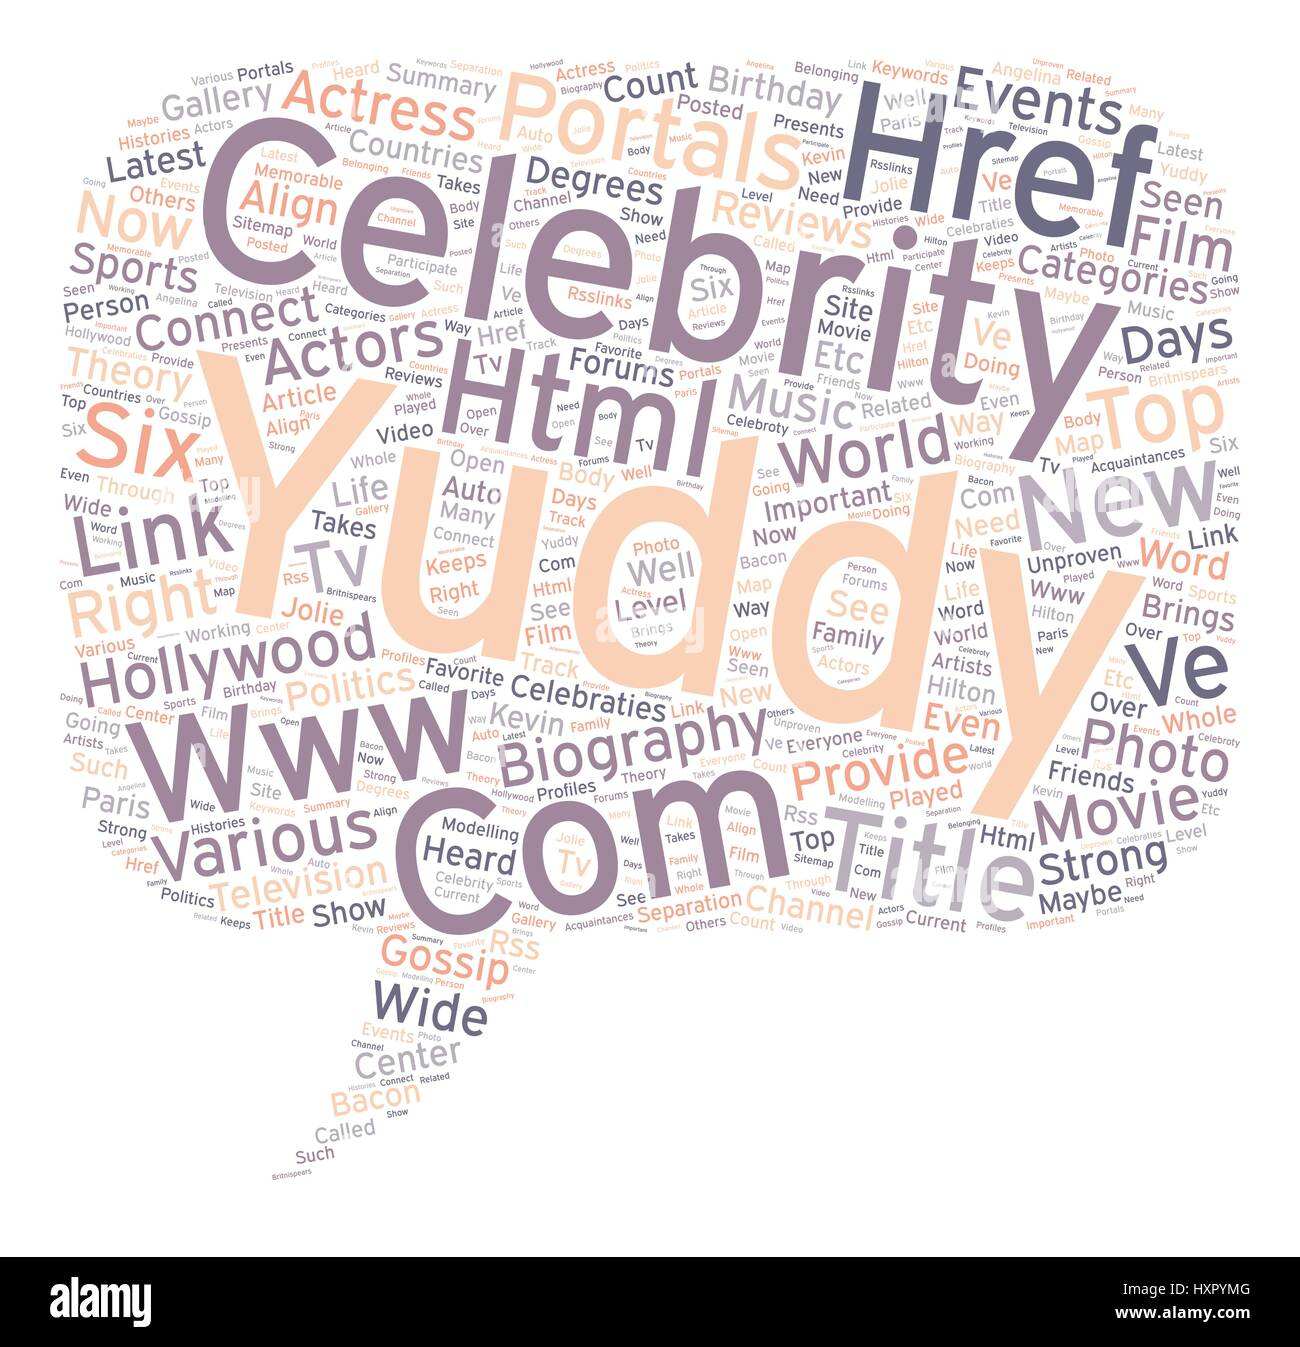 yuddy com provides the celebraties and biography of top Hollywood Actress and Actors text background wordcloud concept Stock Vector